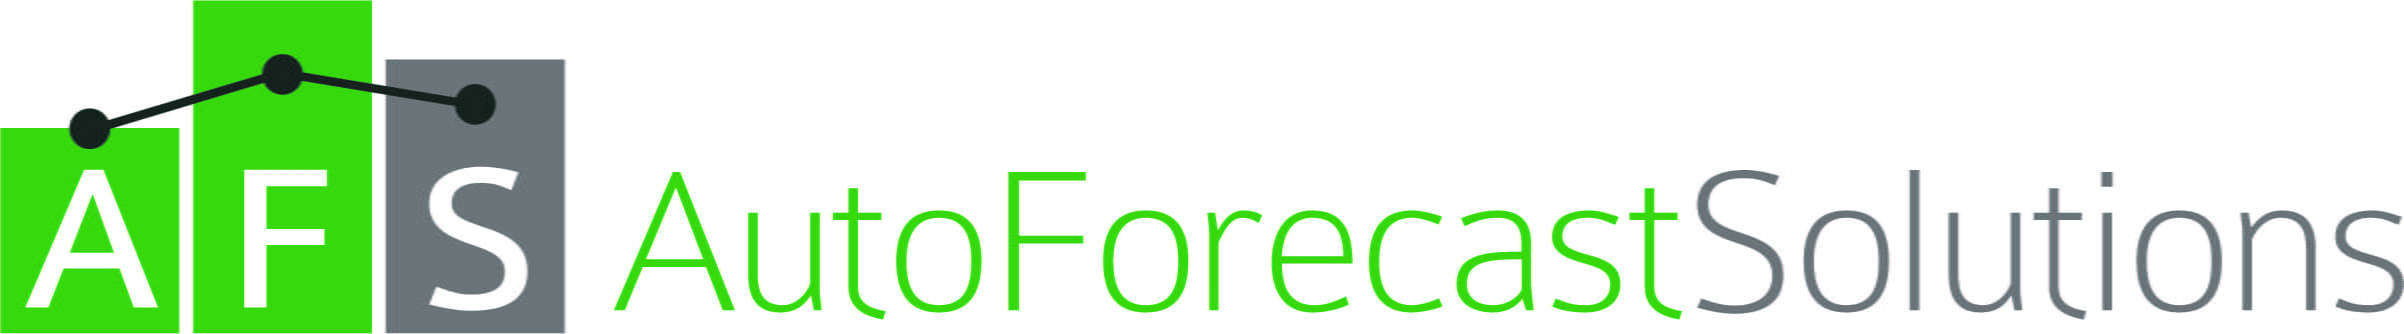 Horizontal logo for Auto Forecast Solutions (AFS).